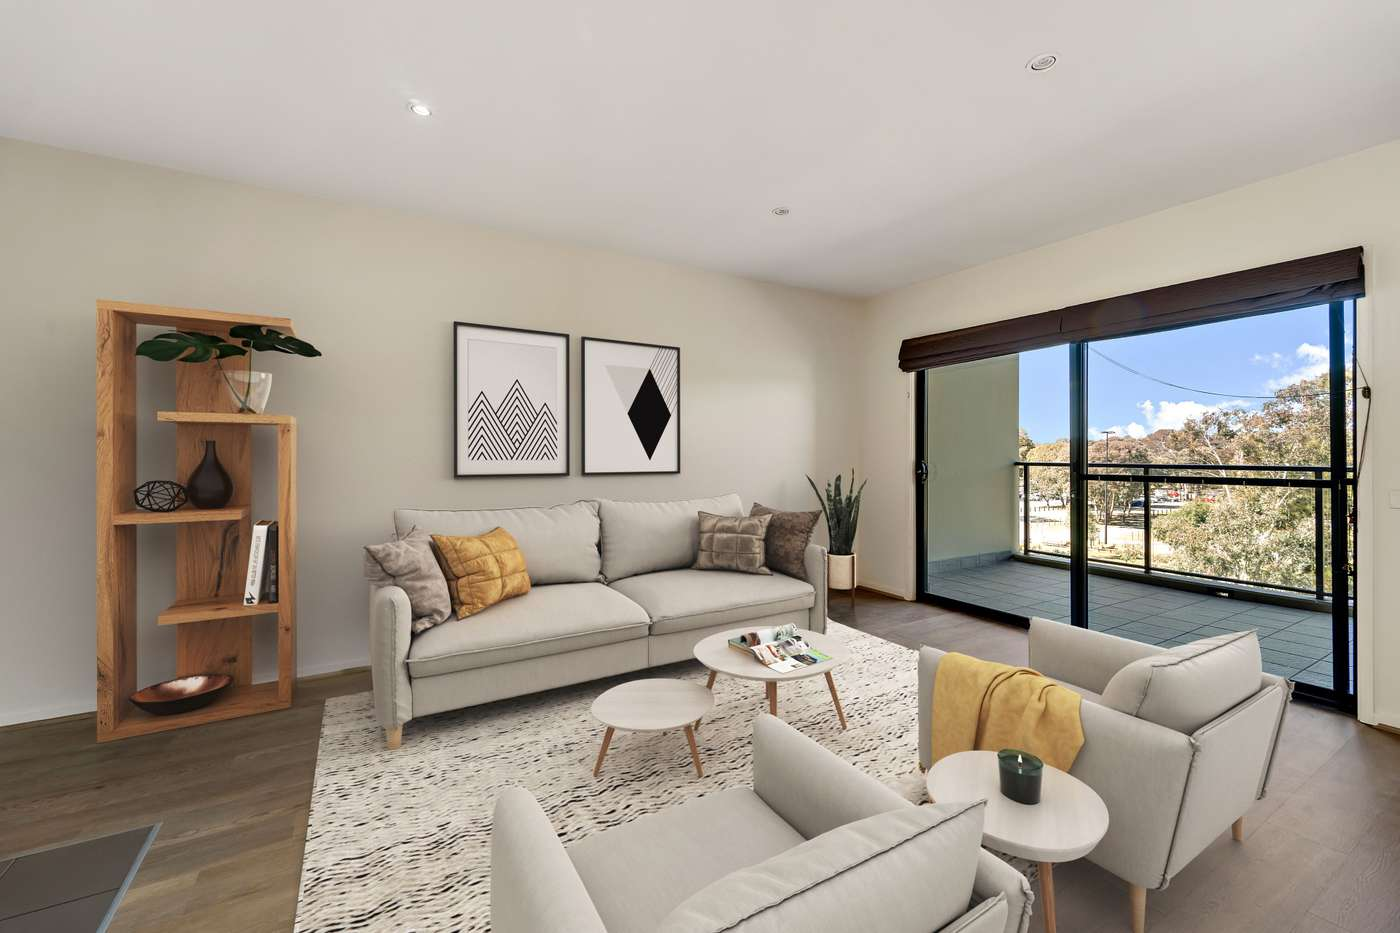 Main view of Homely apartment listing, 125/21 Battye Street, Bruce, ACT 2617